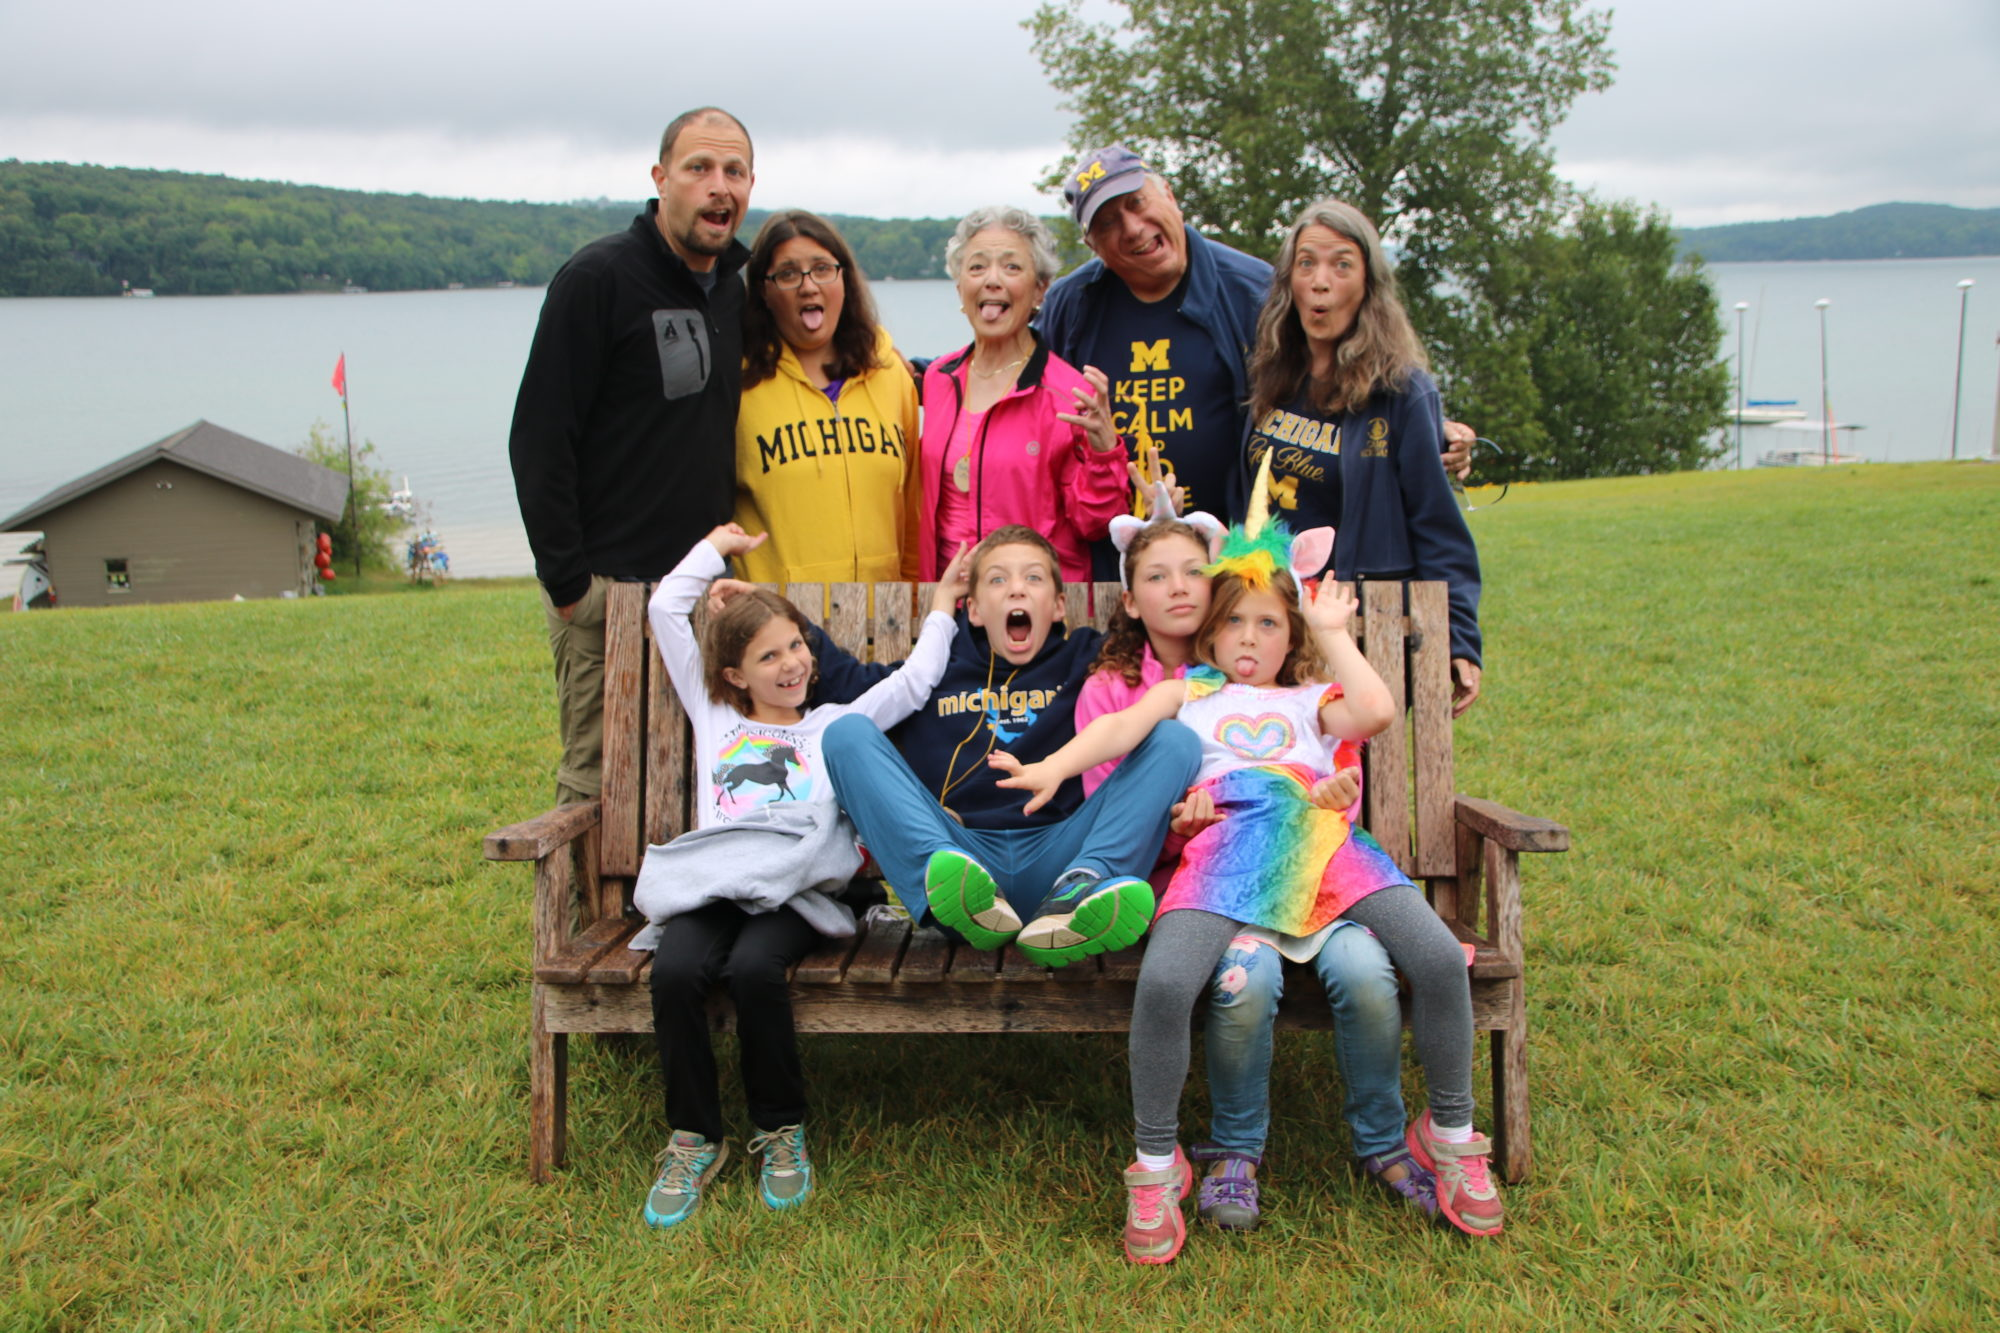 Igniting the Imagination: A Vision for a Jewish Family Camp